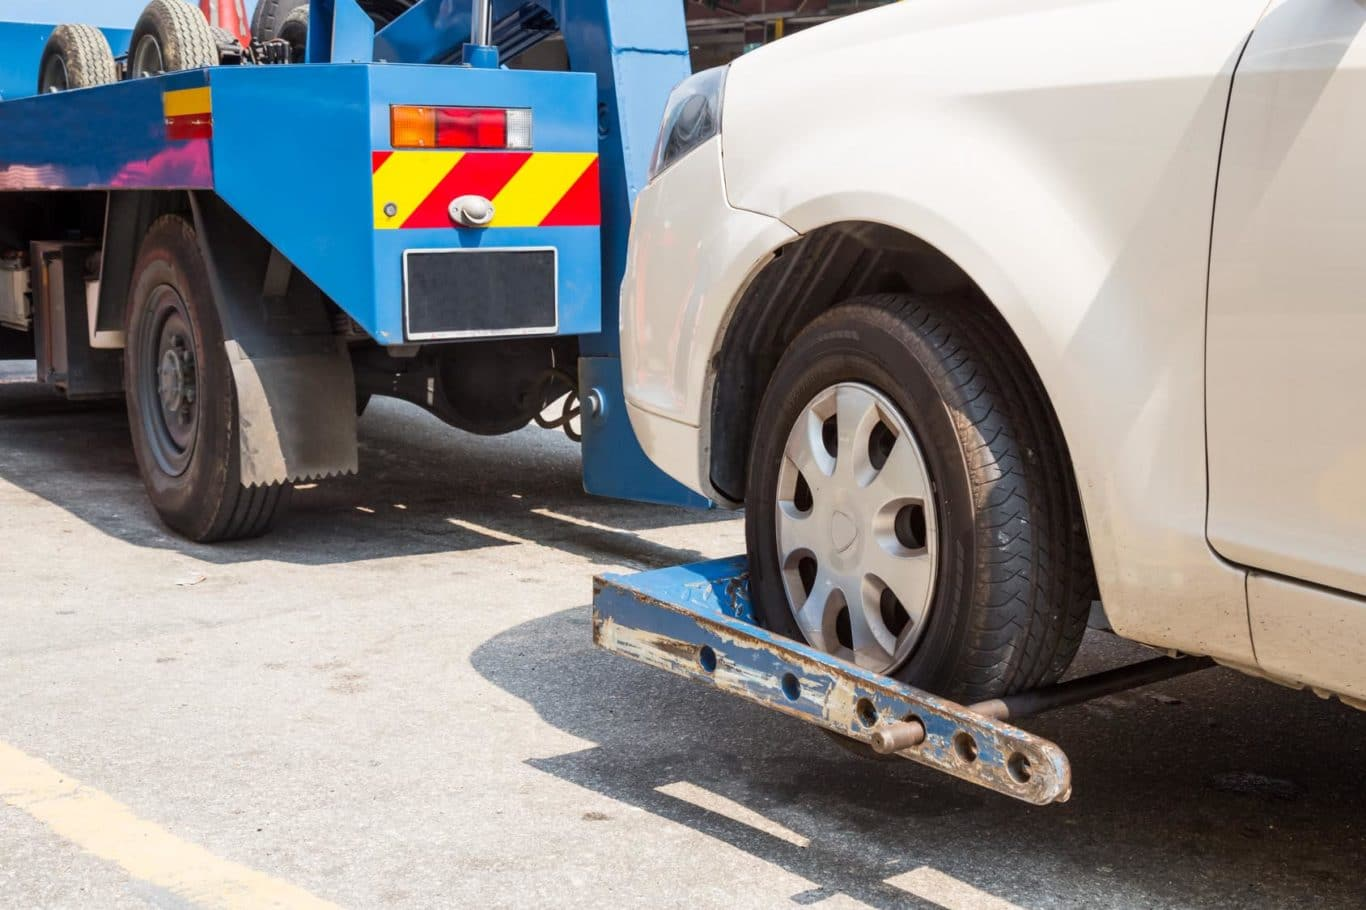 Meath expert Roadside Assistance services